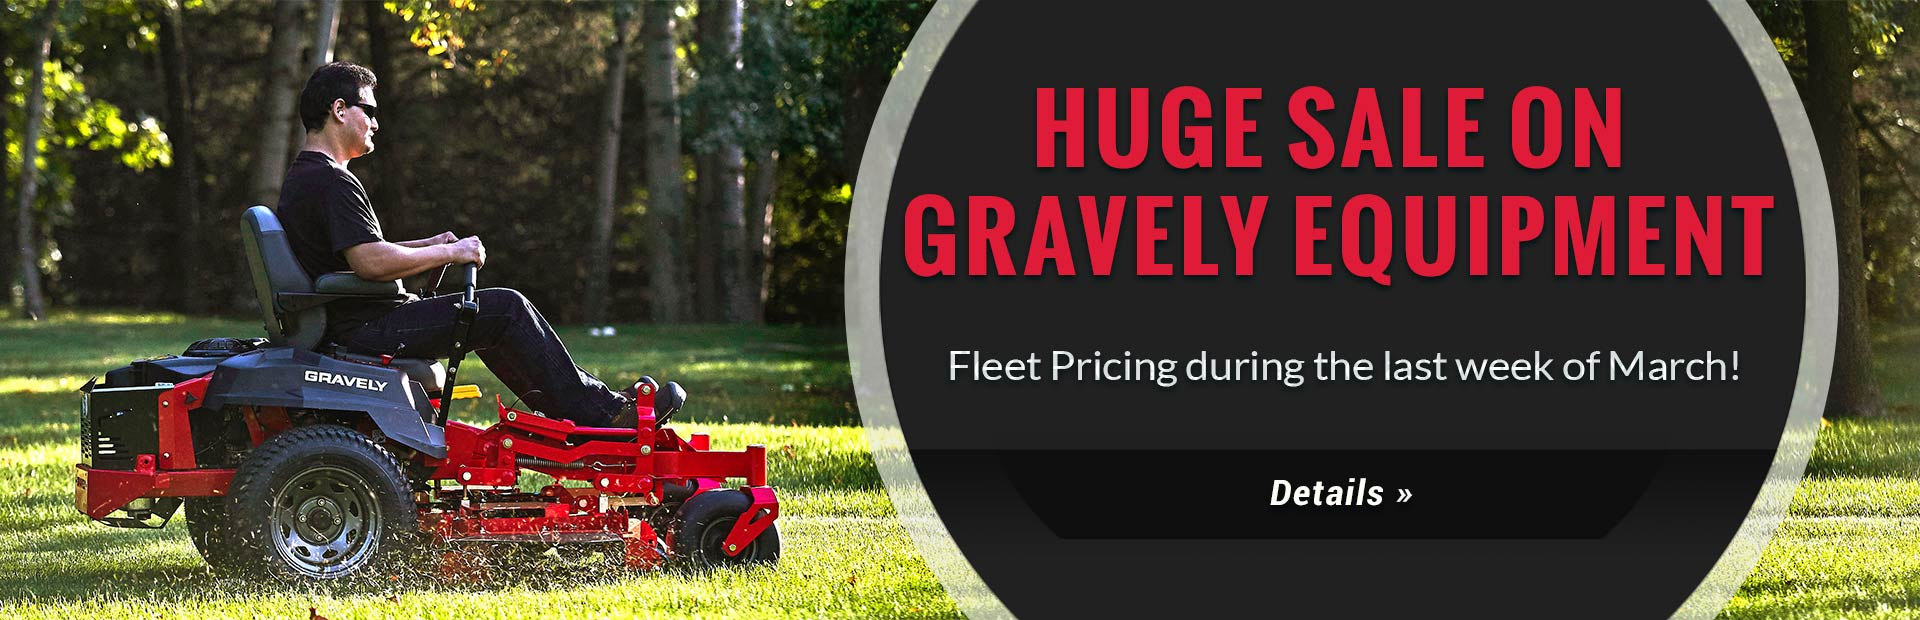 Huge sale on Gravely equipment: Fleet pricing during the last week of March! Click here to view the